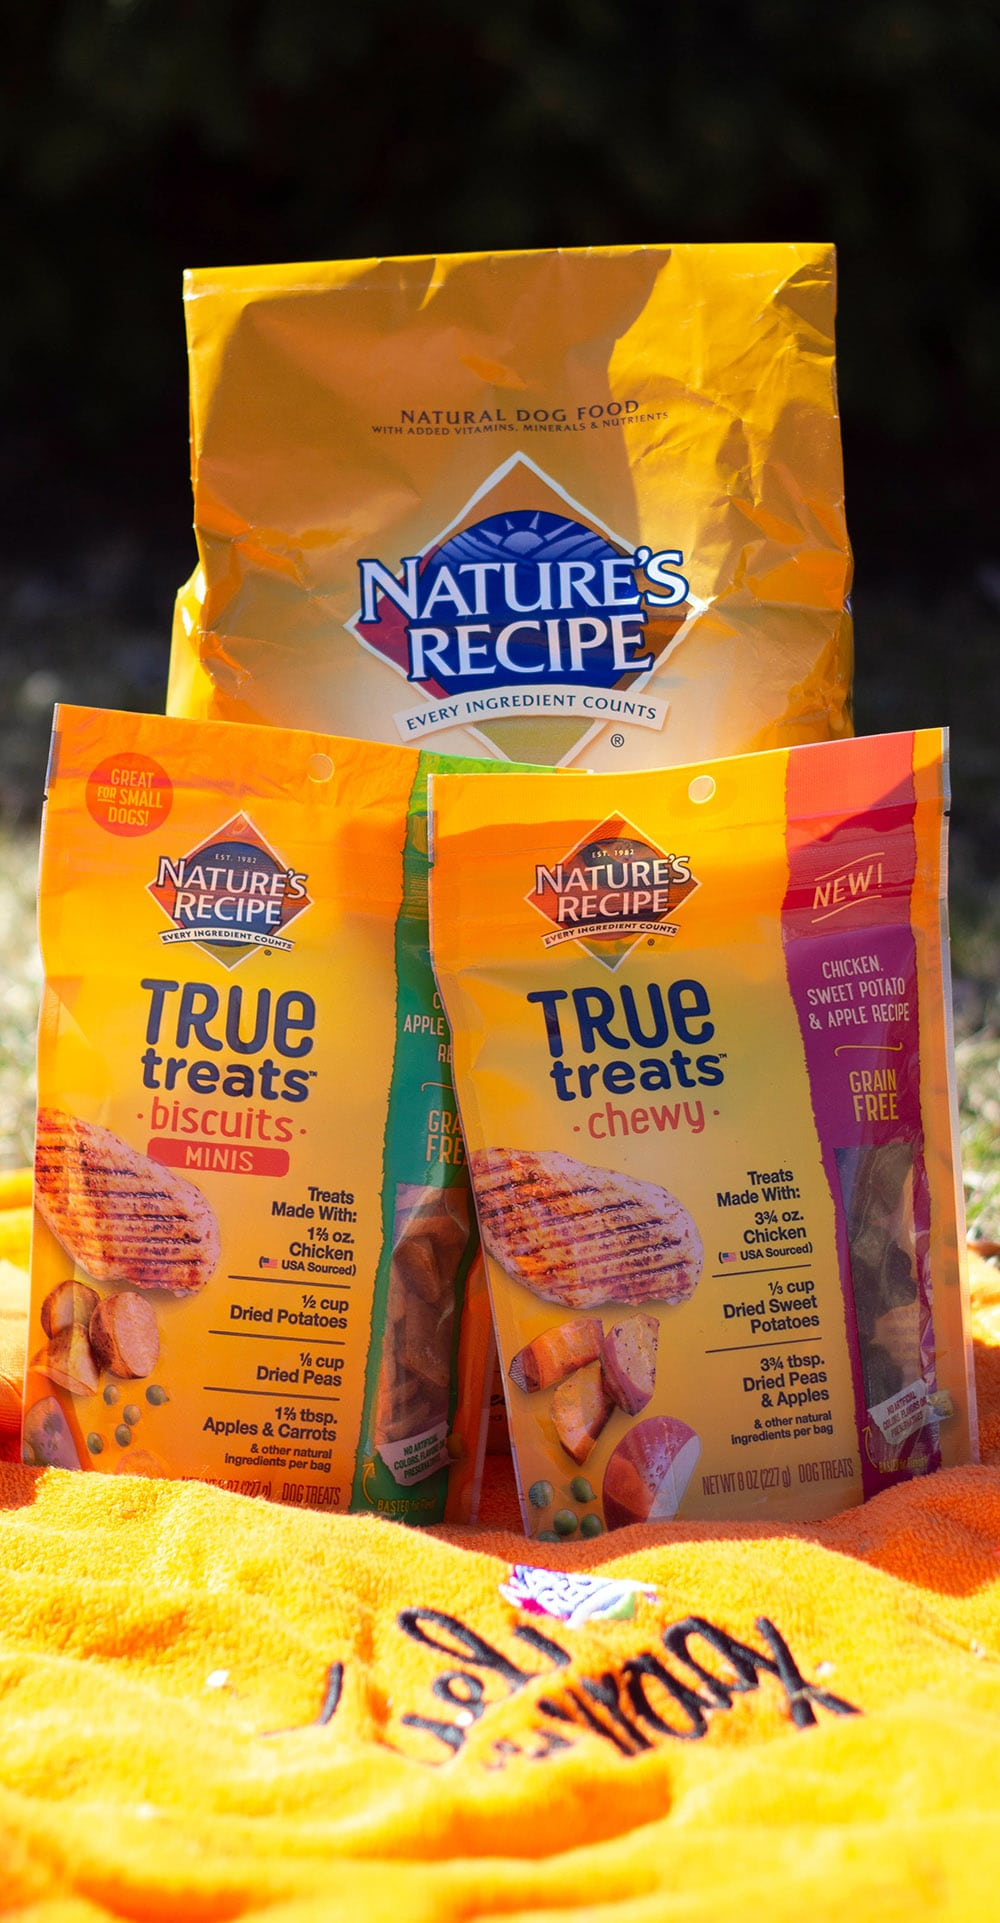 Nature's Recipe dog food and treats